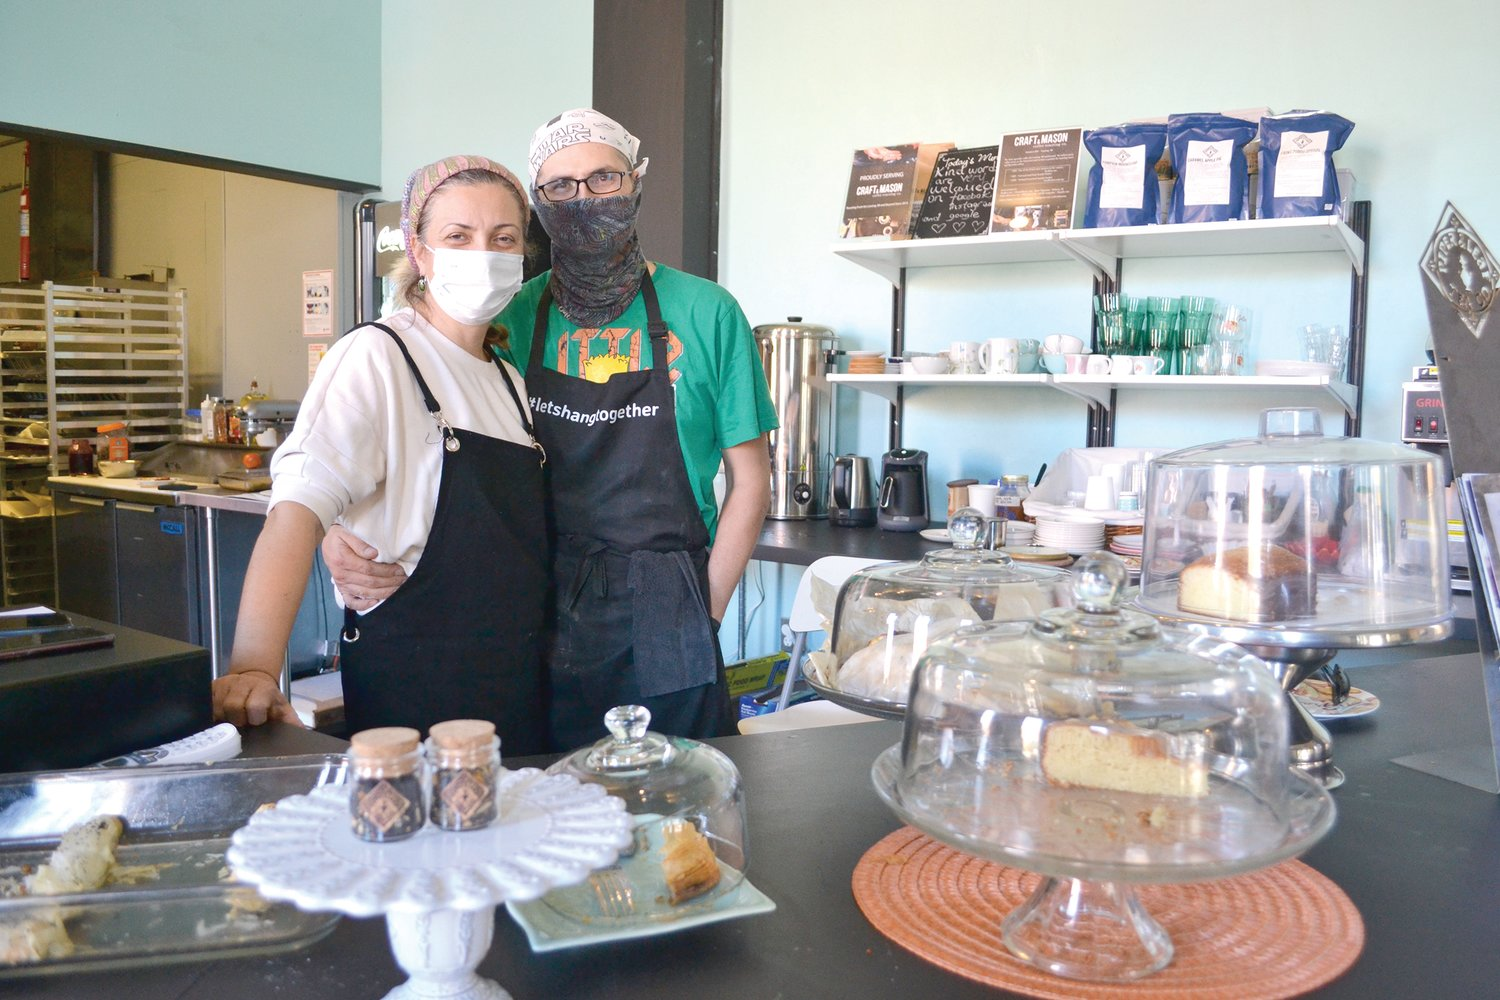 Burcay (left) and Aybars Gunguler, owners of Social Sloth Cafe & Bakery, which has received a lot of support through social media campaigns such as 